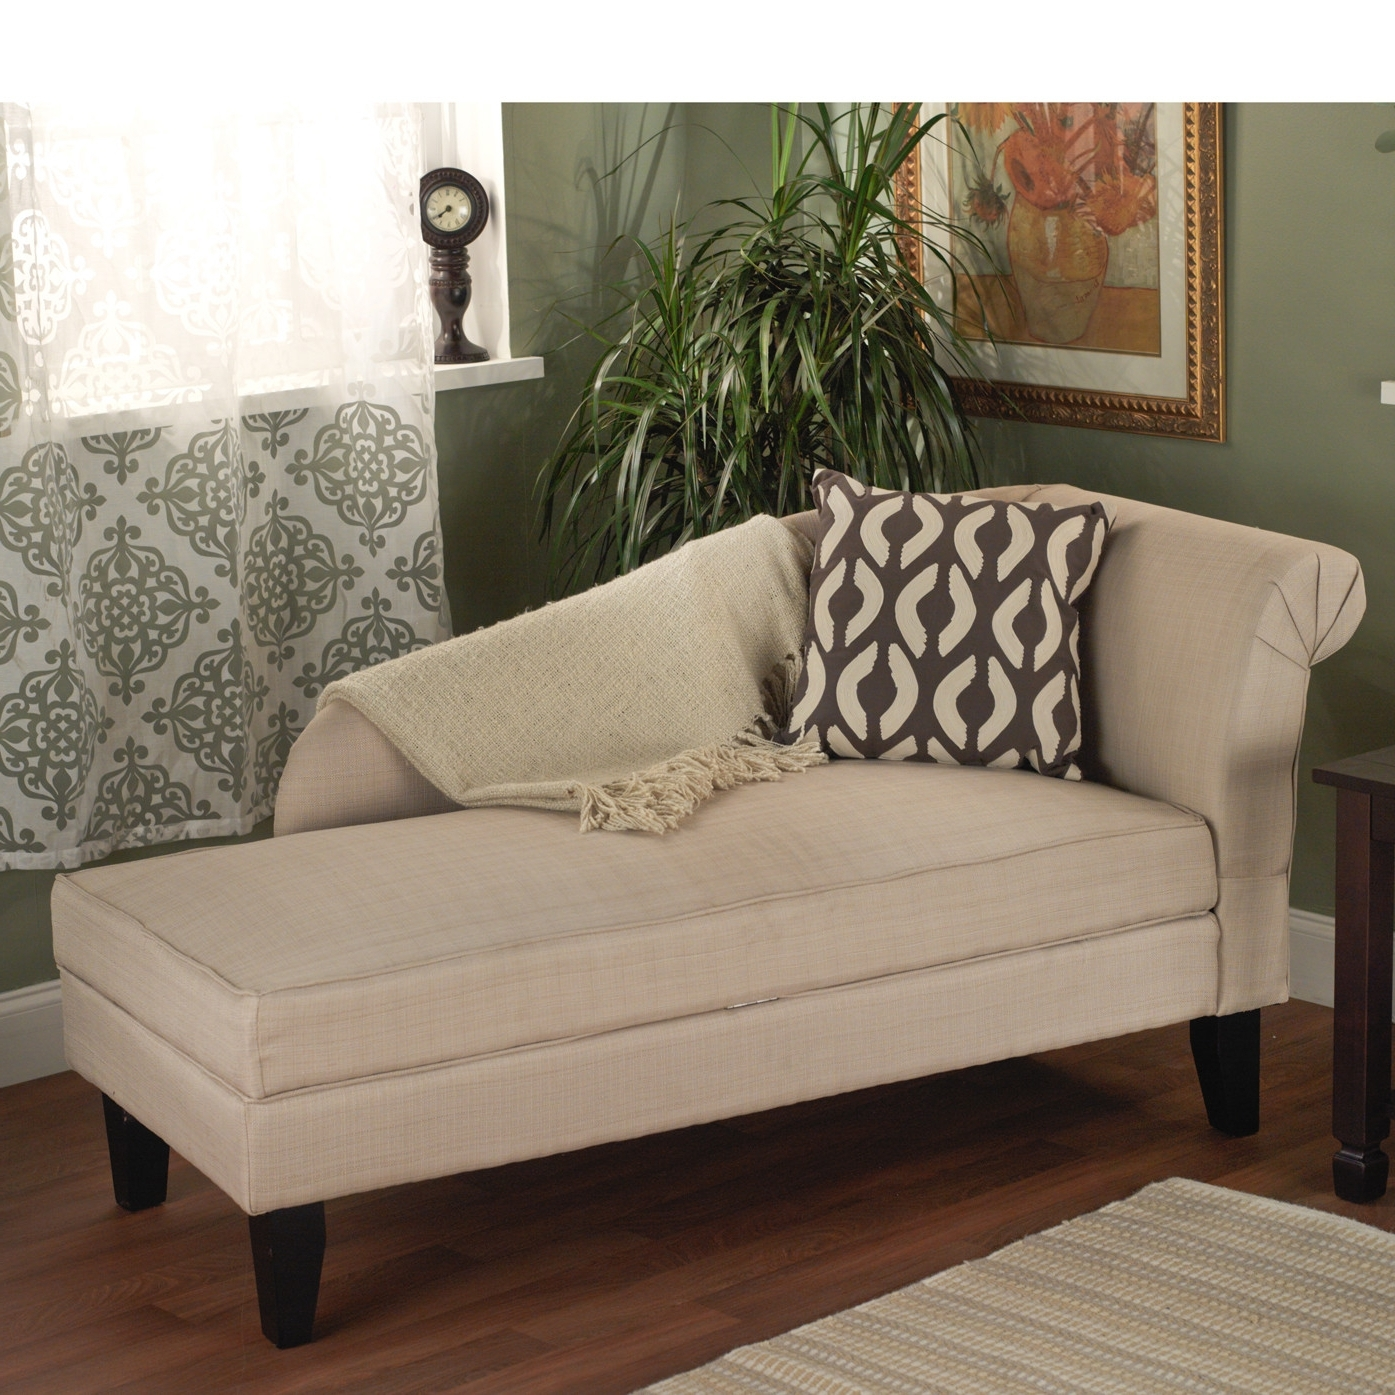 Chaise Lounge Chairs With Storage Pertaining To Well Liked Indoor Chaise Lounge Chairs With Storage • Lounge Chairs Ideas (View 4 of 15)